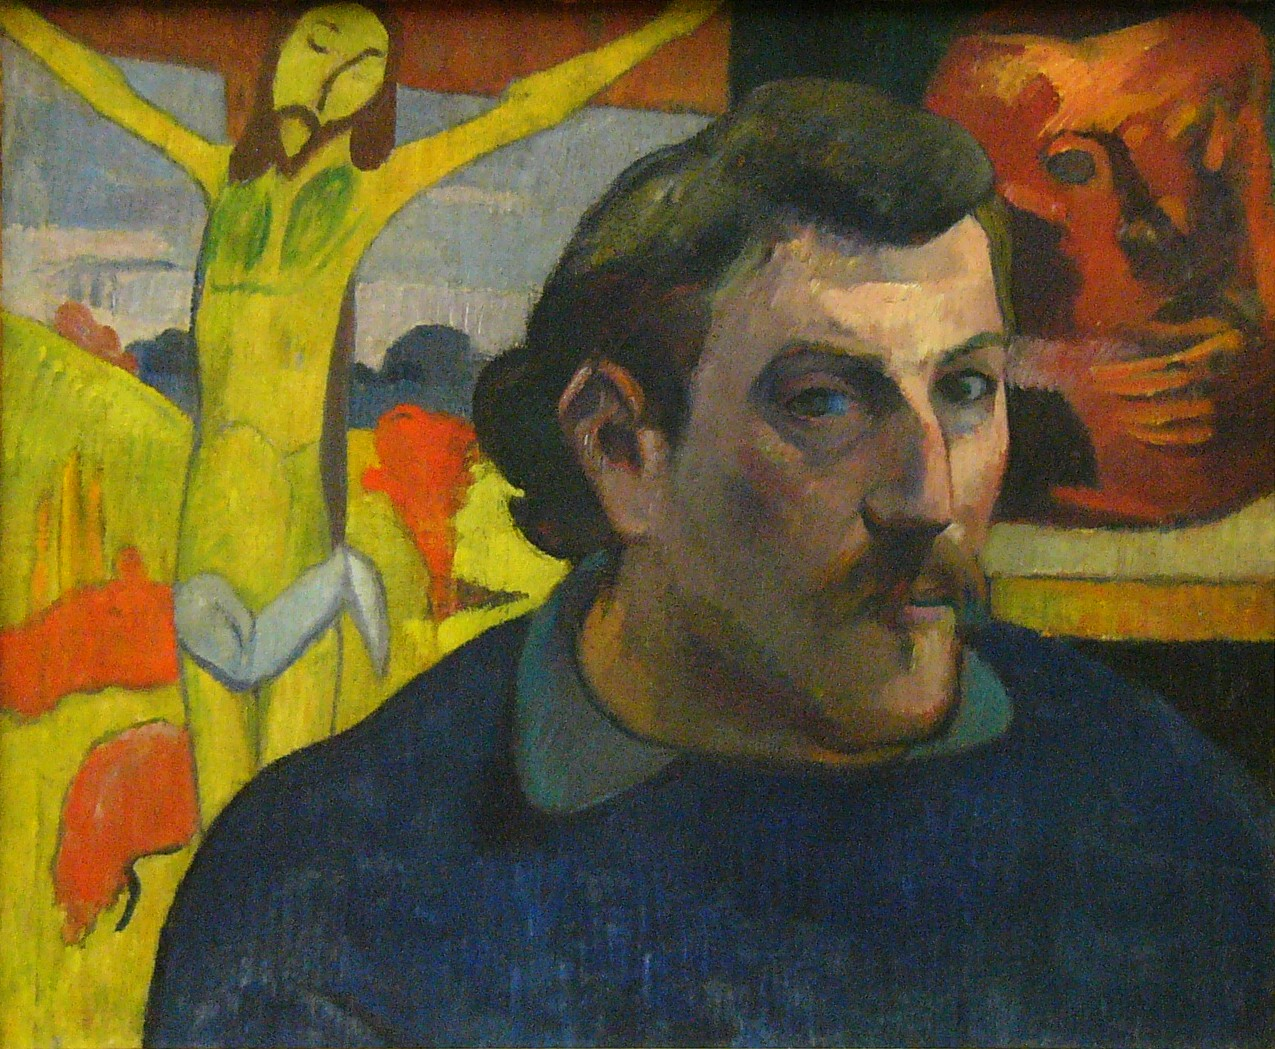 Pittori Francesi Surrealisti Paul Gauguin Wikipedia